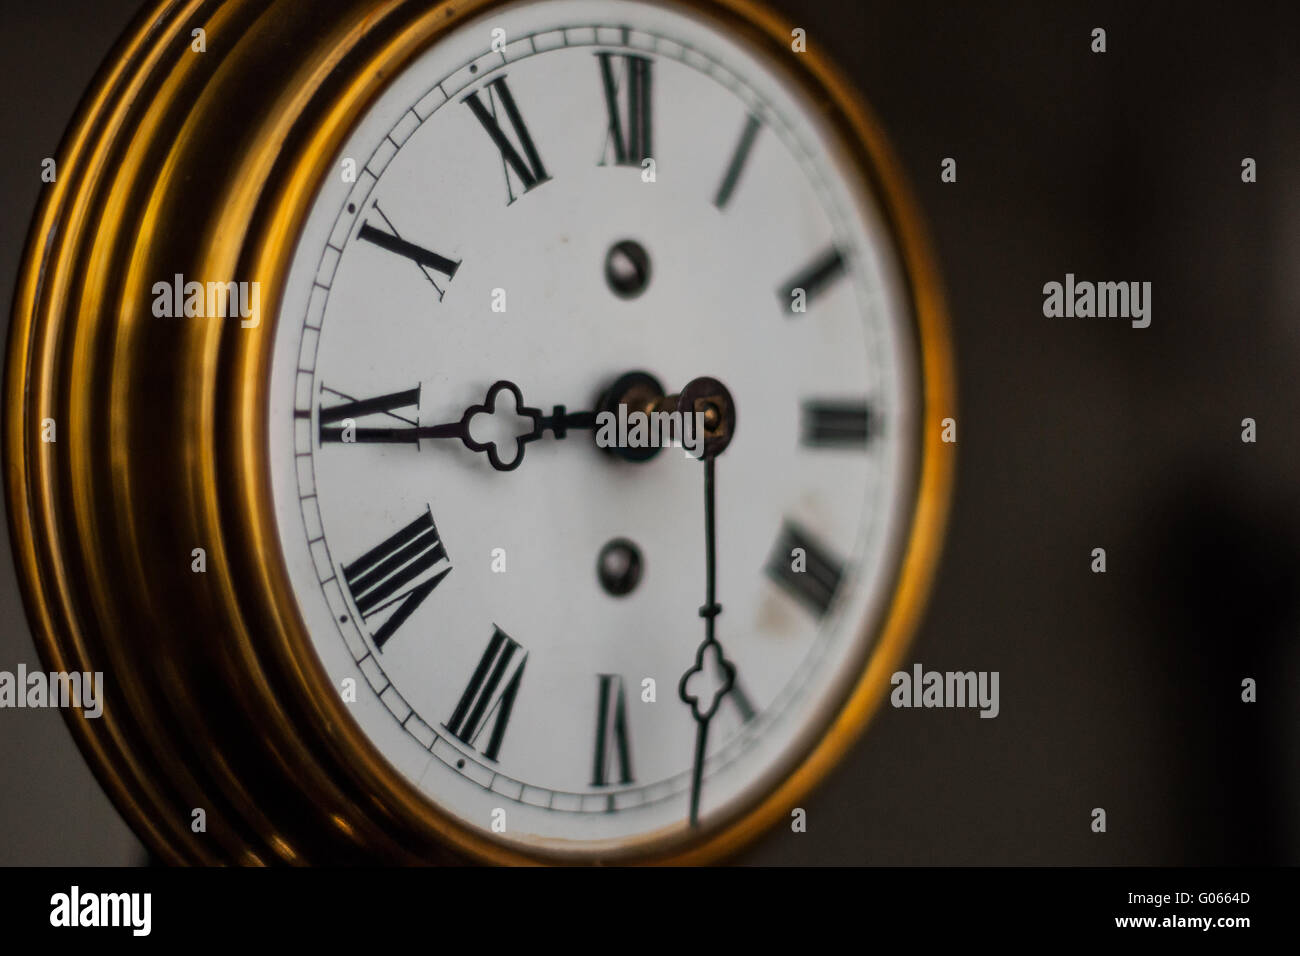 antique clock with roman numerals - Stock Image